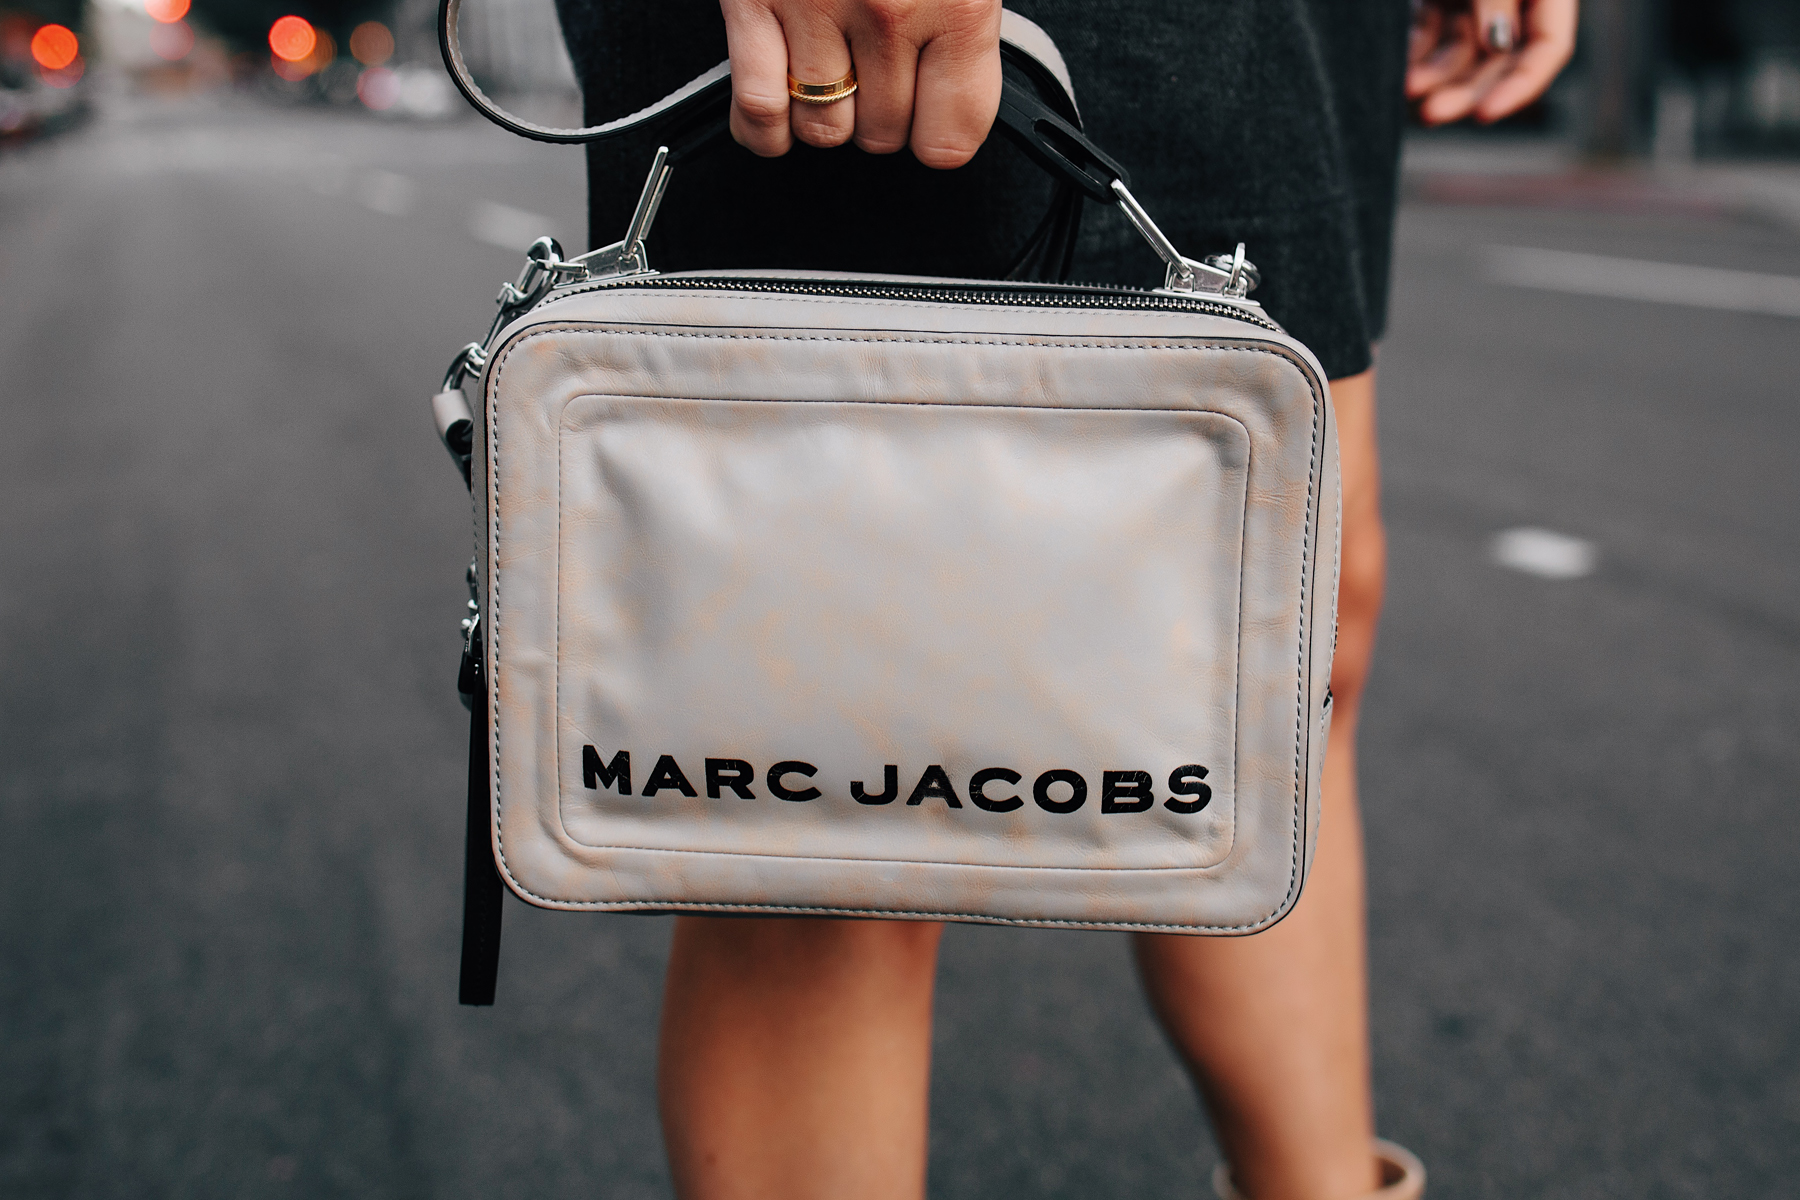 Woman Wearing Marc Jacobs The Box Bag Griffin Fashion Jackson San Diego Fashion Blogger Street Style